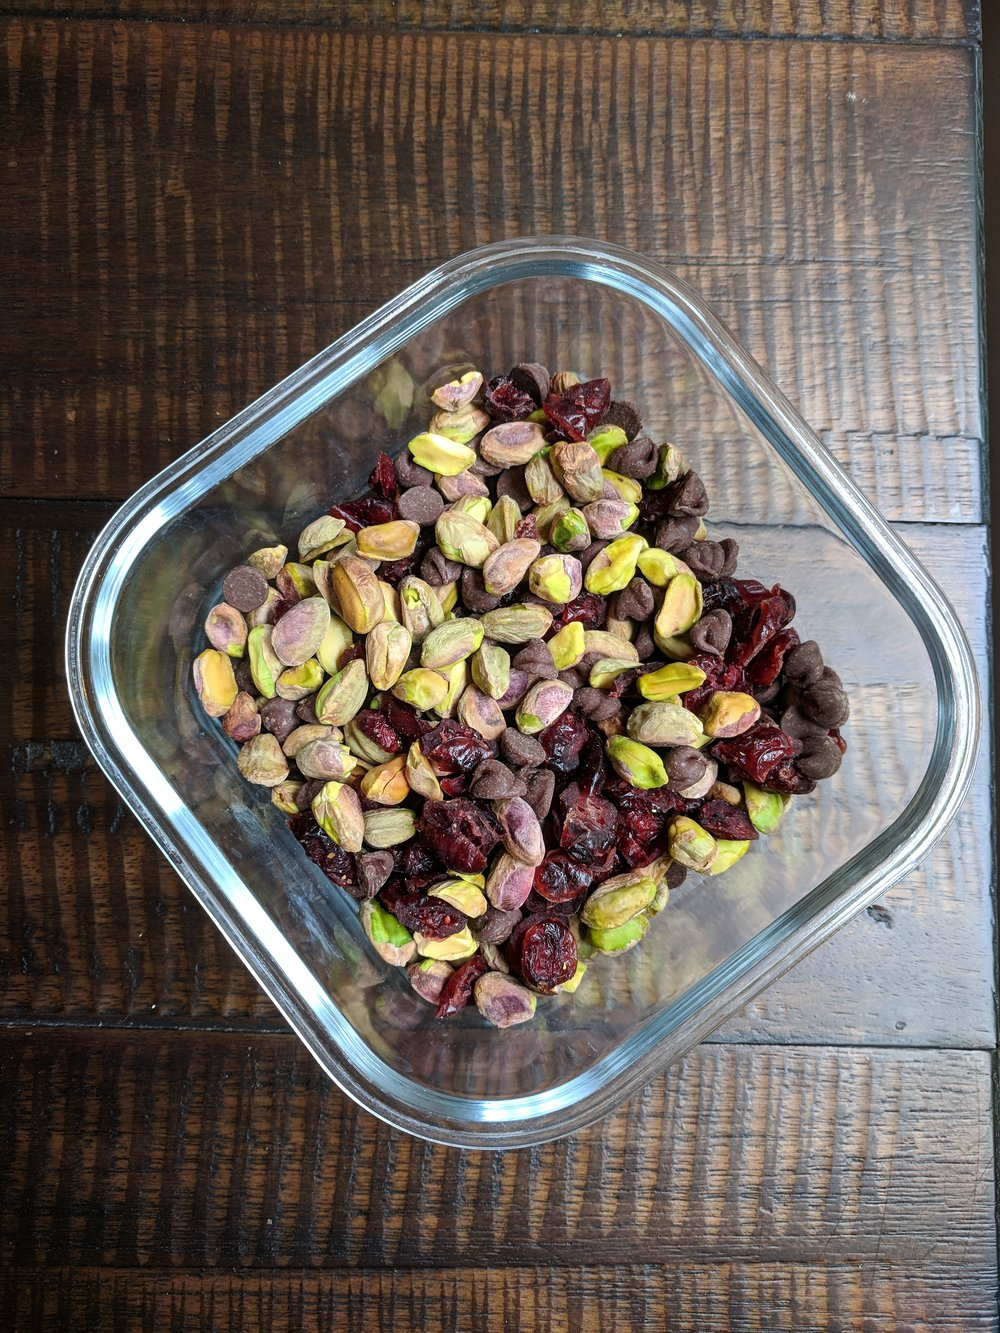 Homemade trail mix with pistachios, dried cranberries, and dark chocolate!